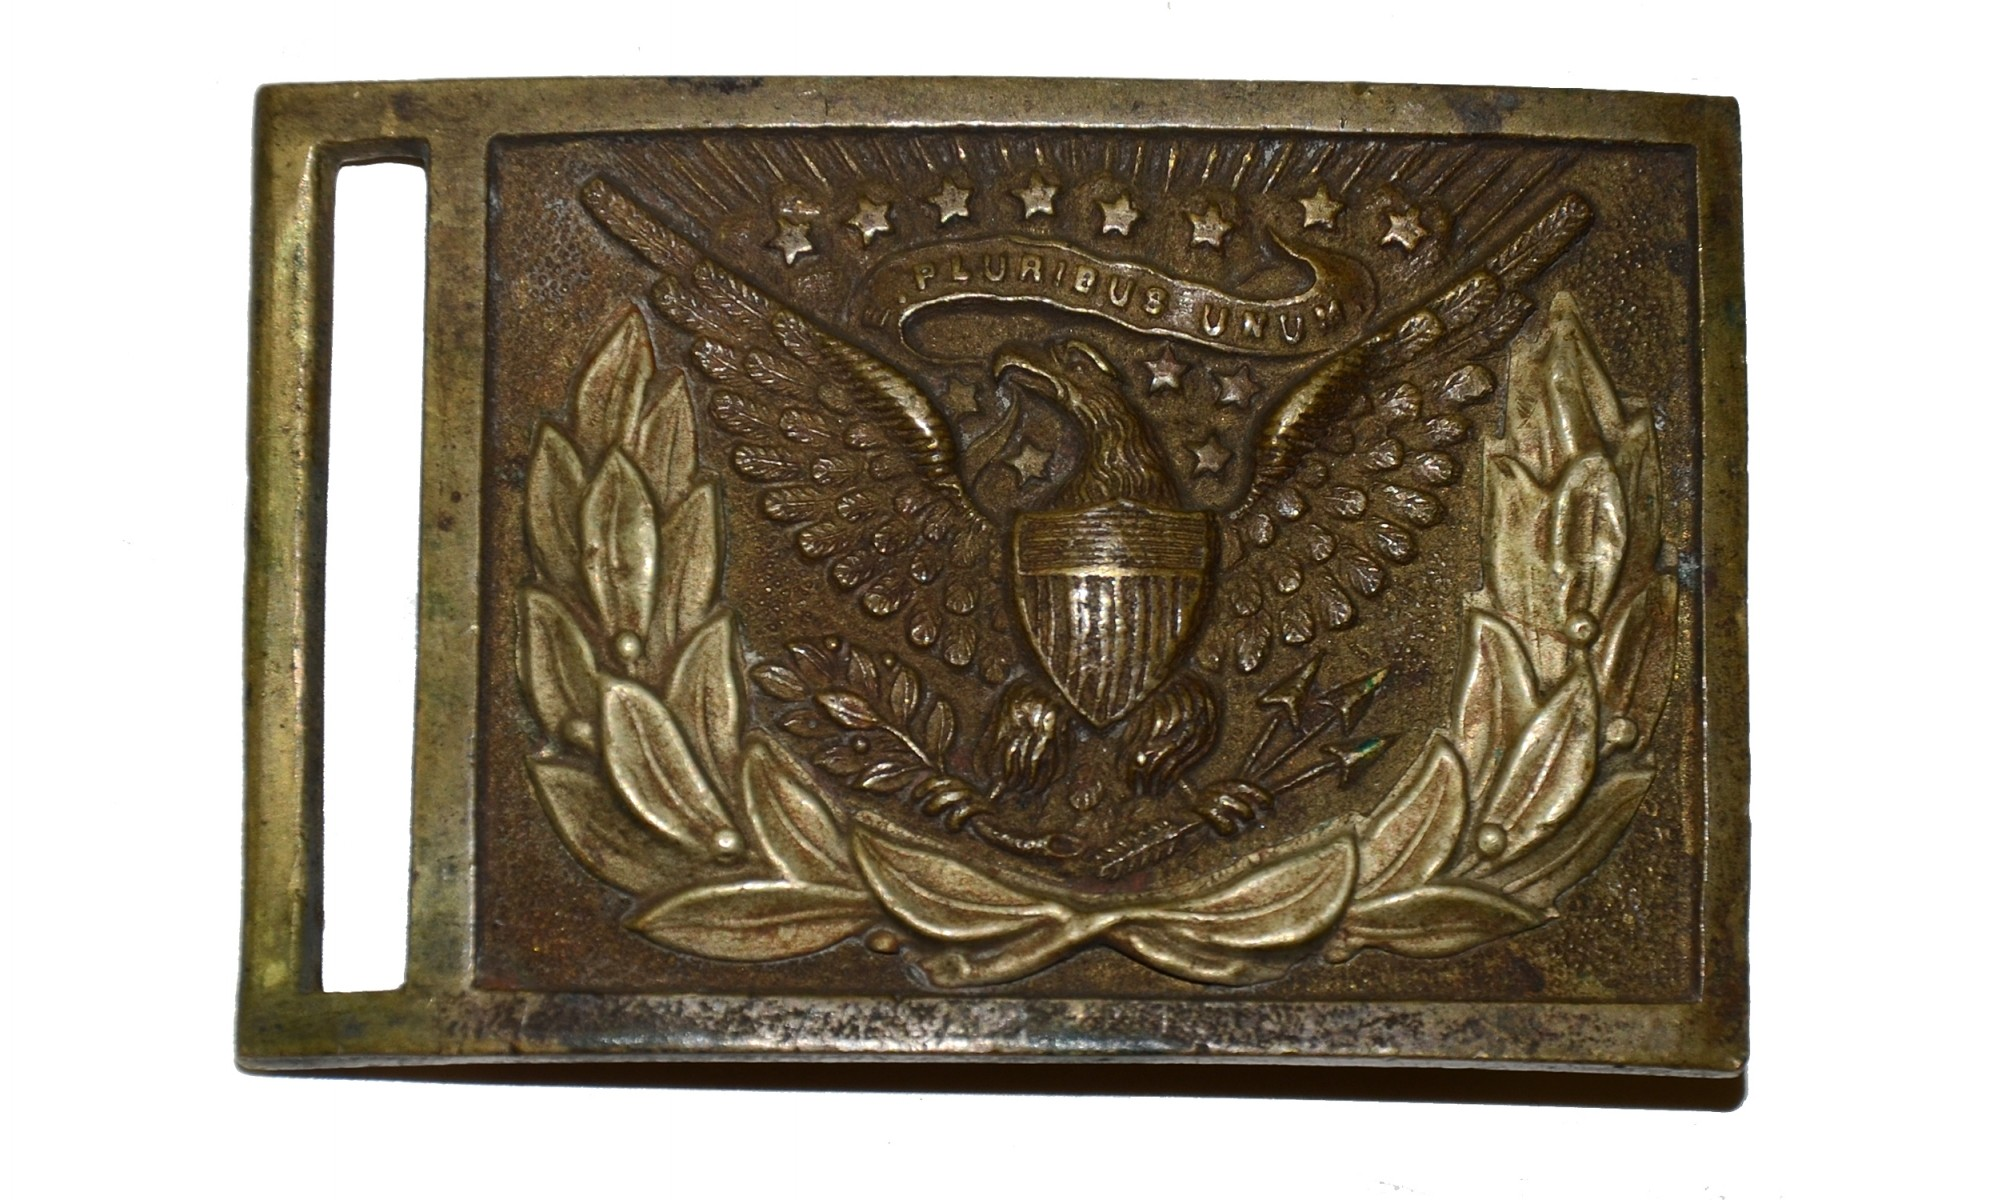 US MODEL 1851 NCO RECTANGULAR BELT PLATE